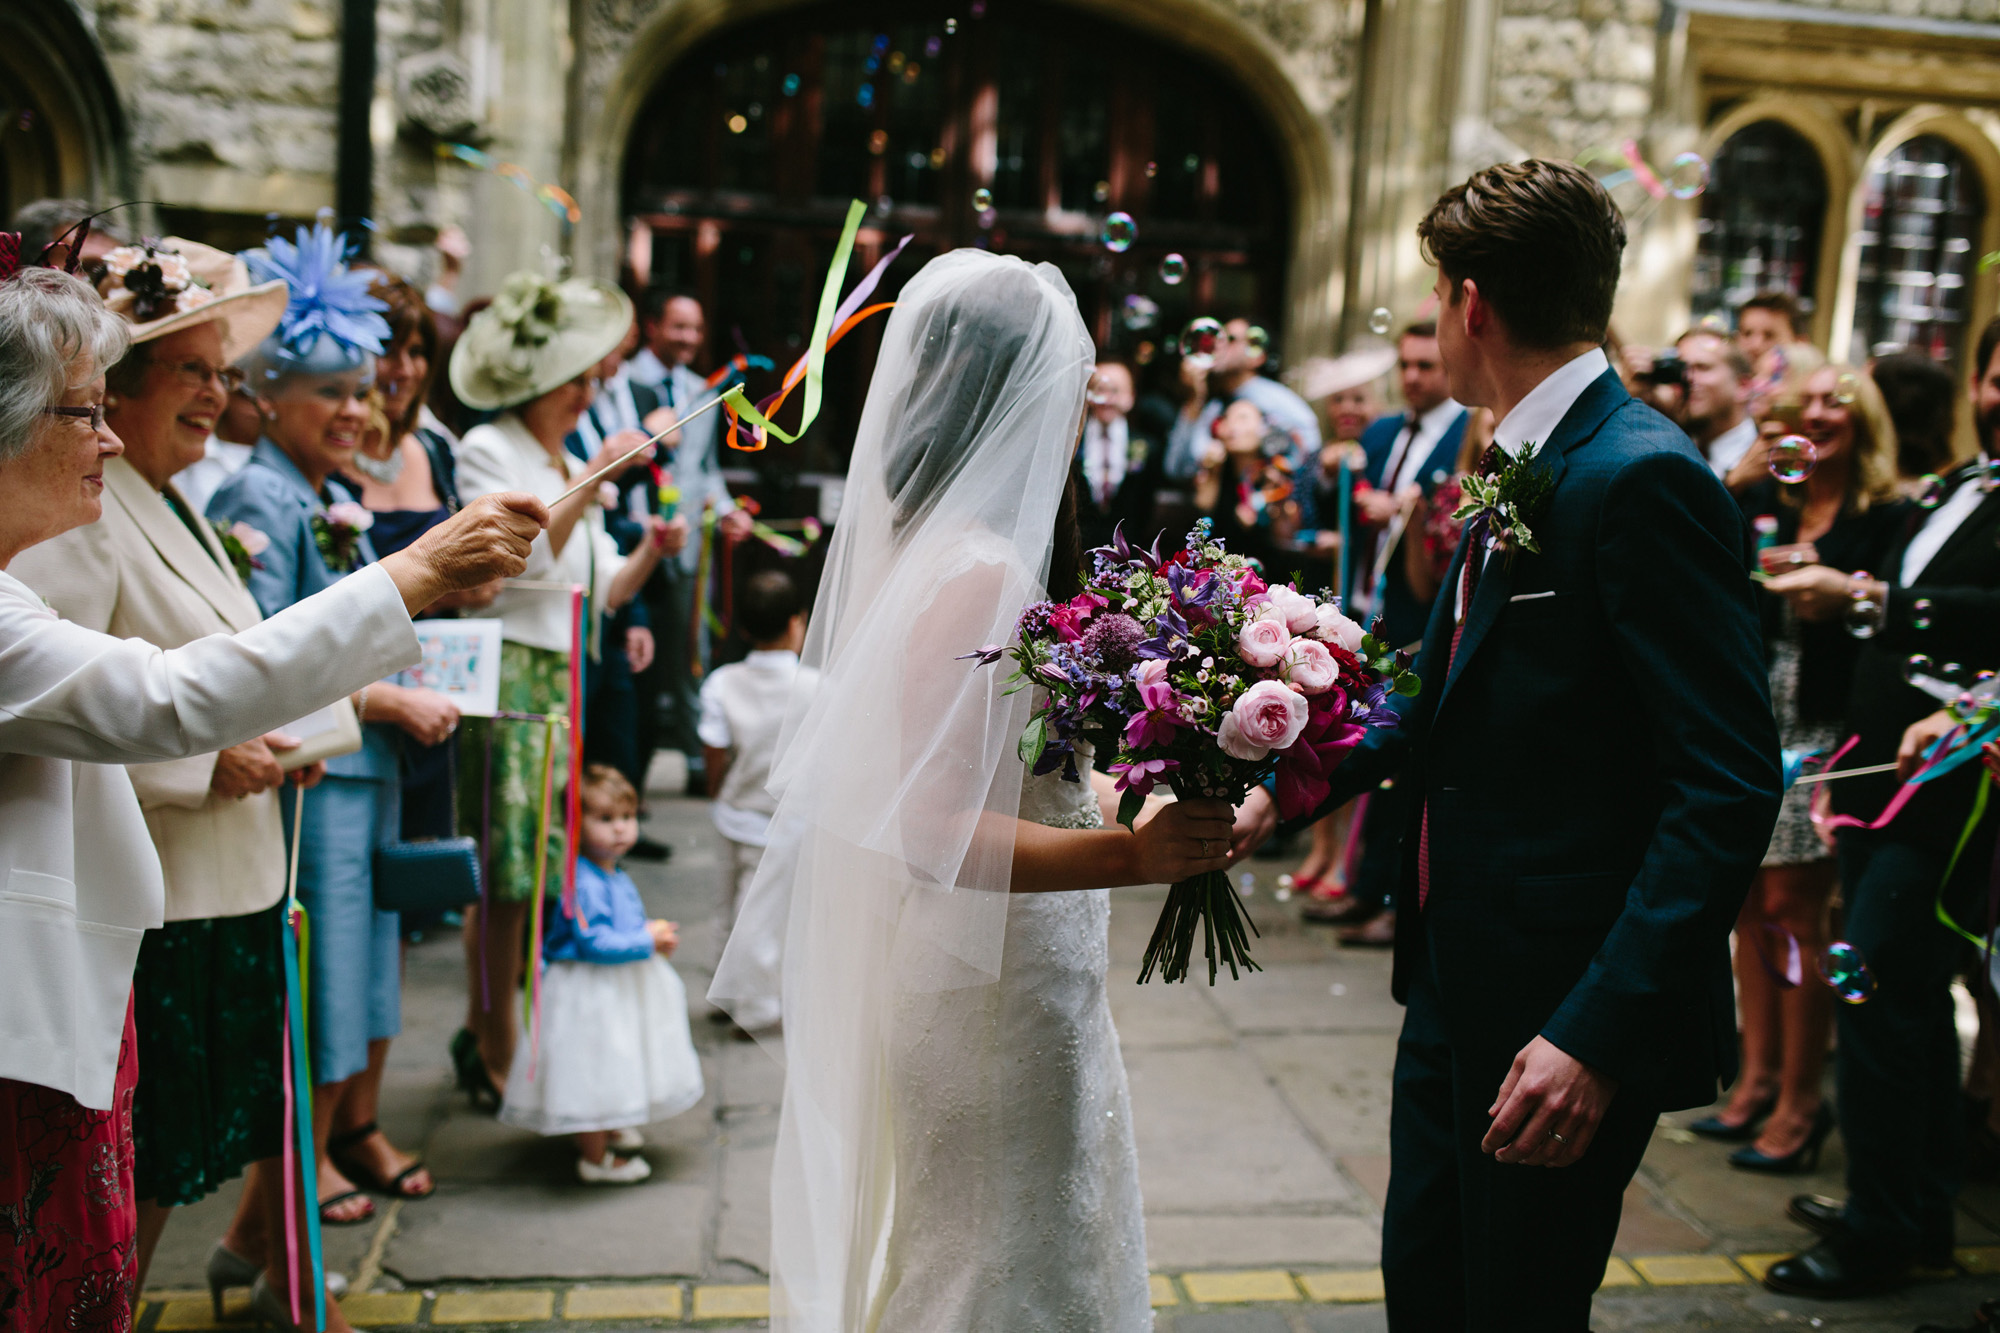 SquareMeal 2017 Weddings Your weddings Peasant experience - credit eliza claire